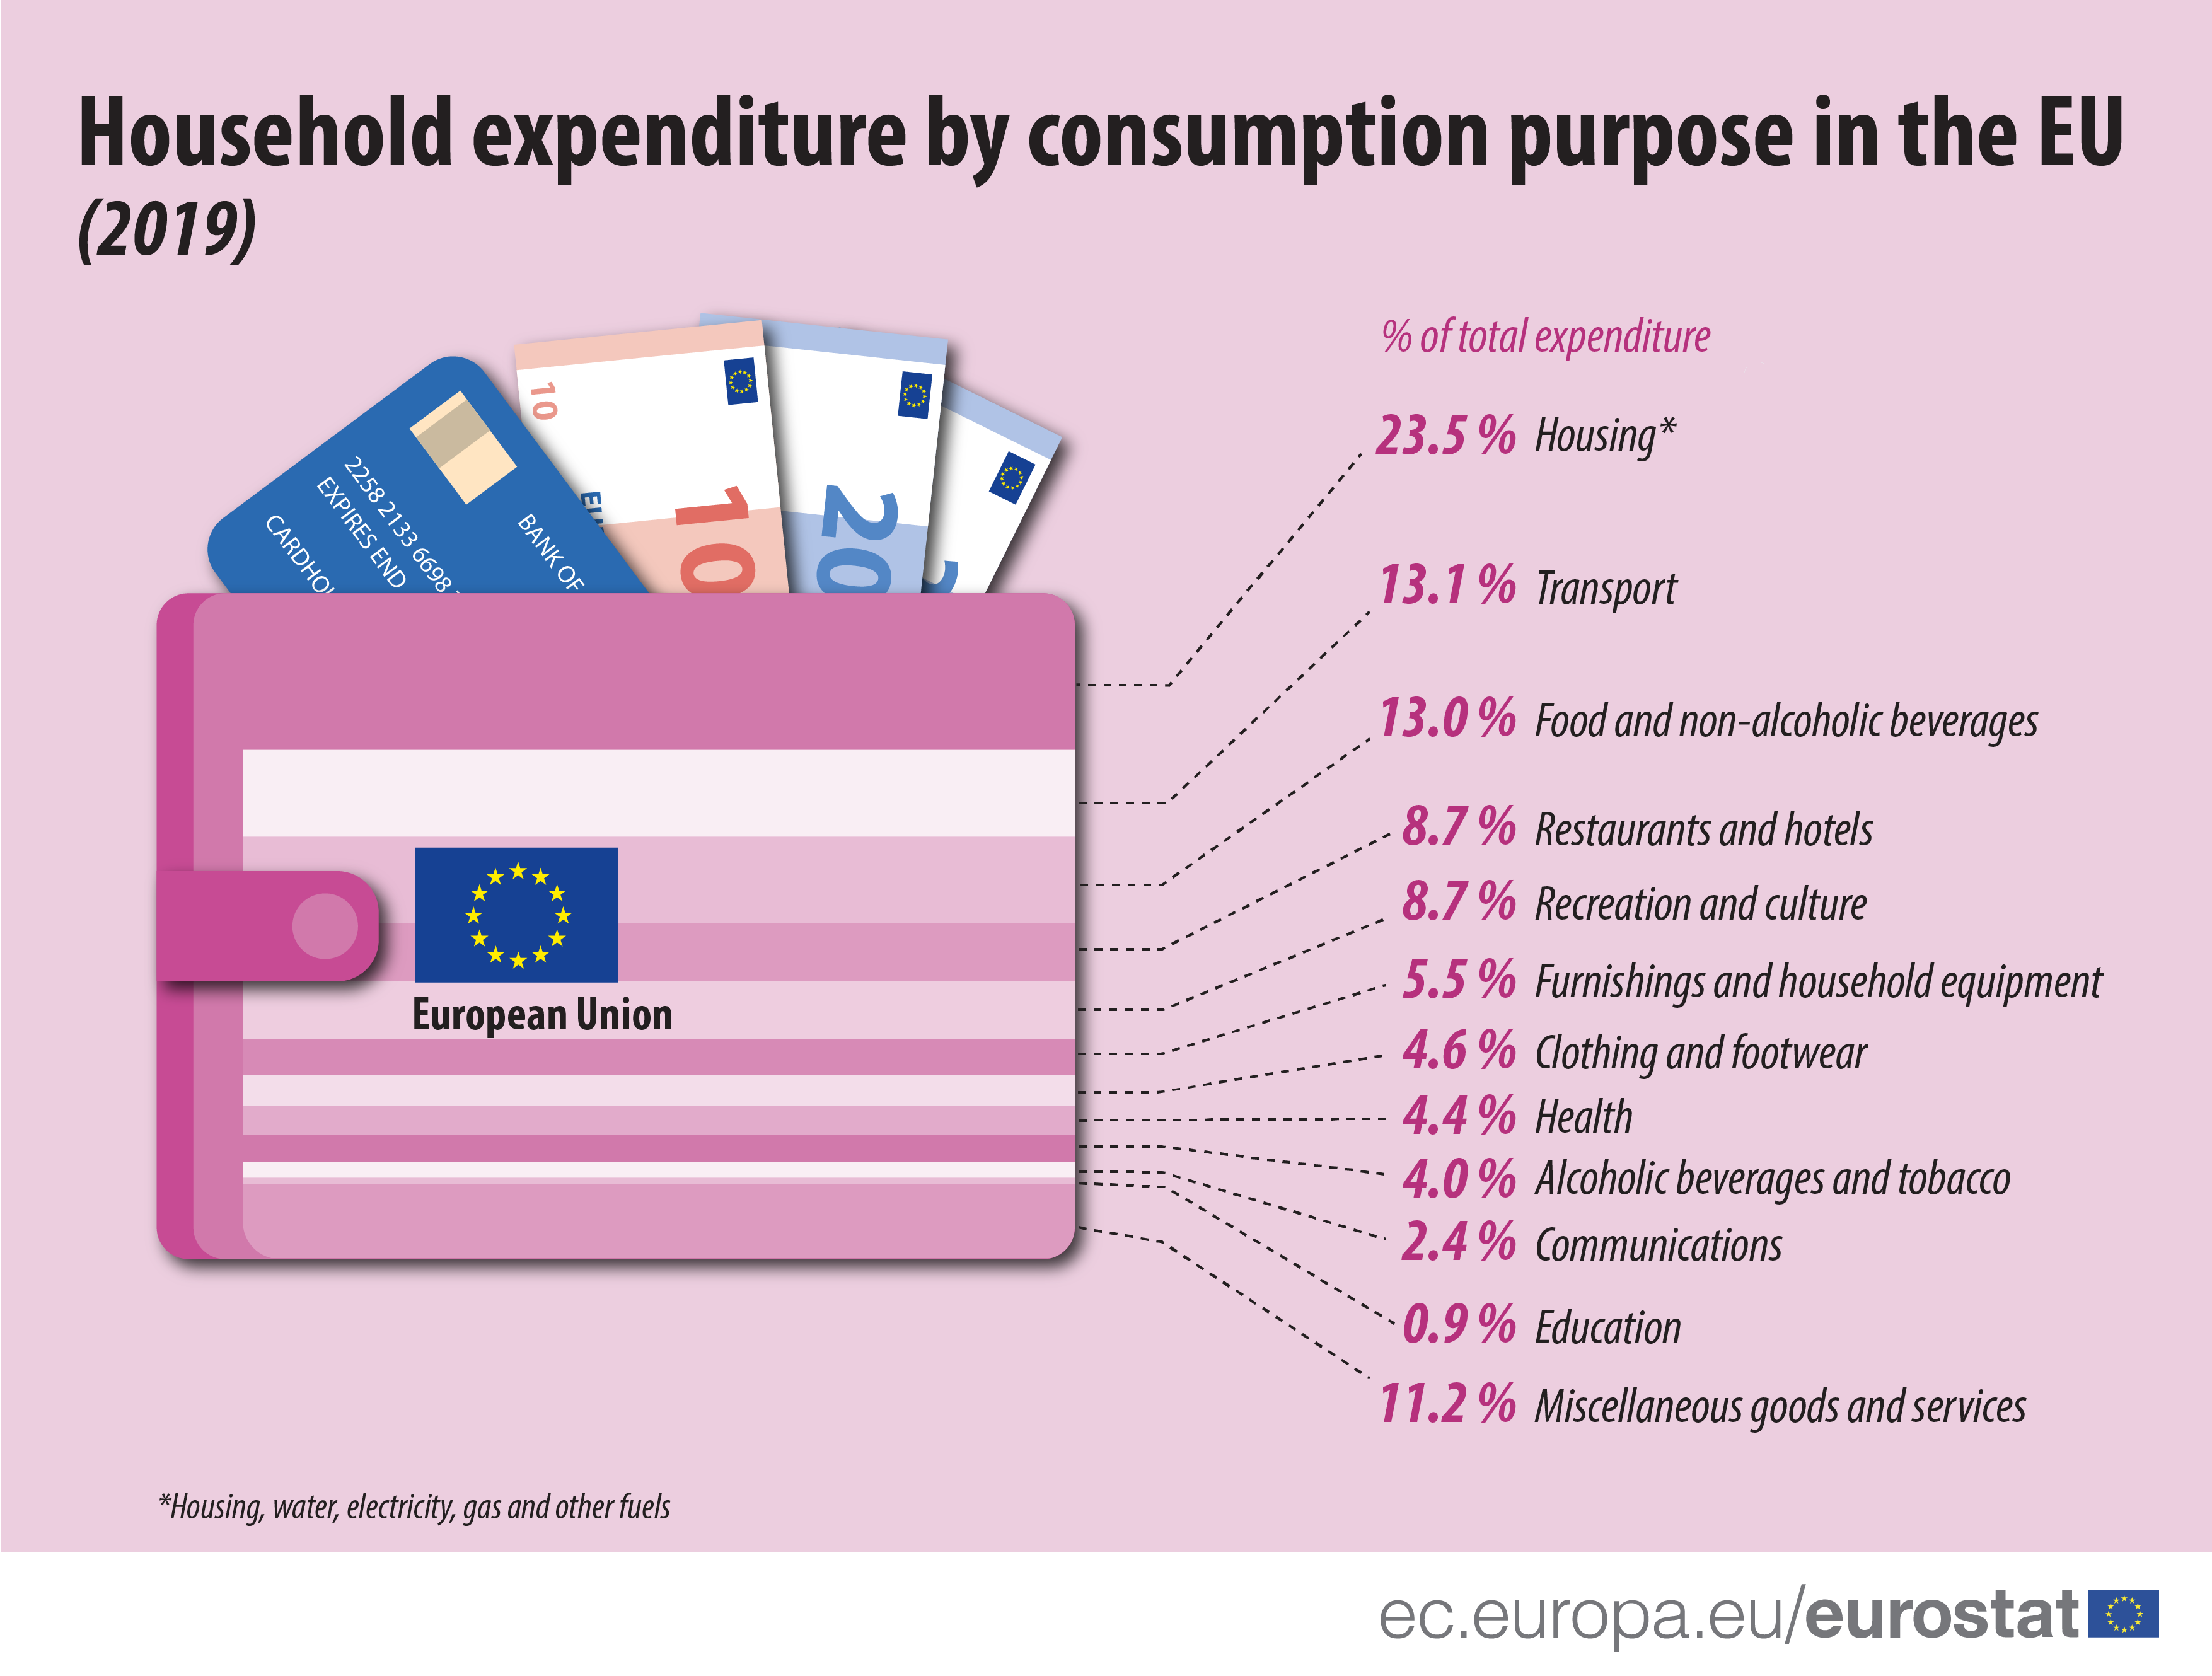 Household expenditure by consumption purpose in the EU, 2019